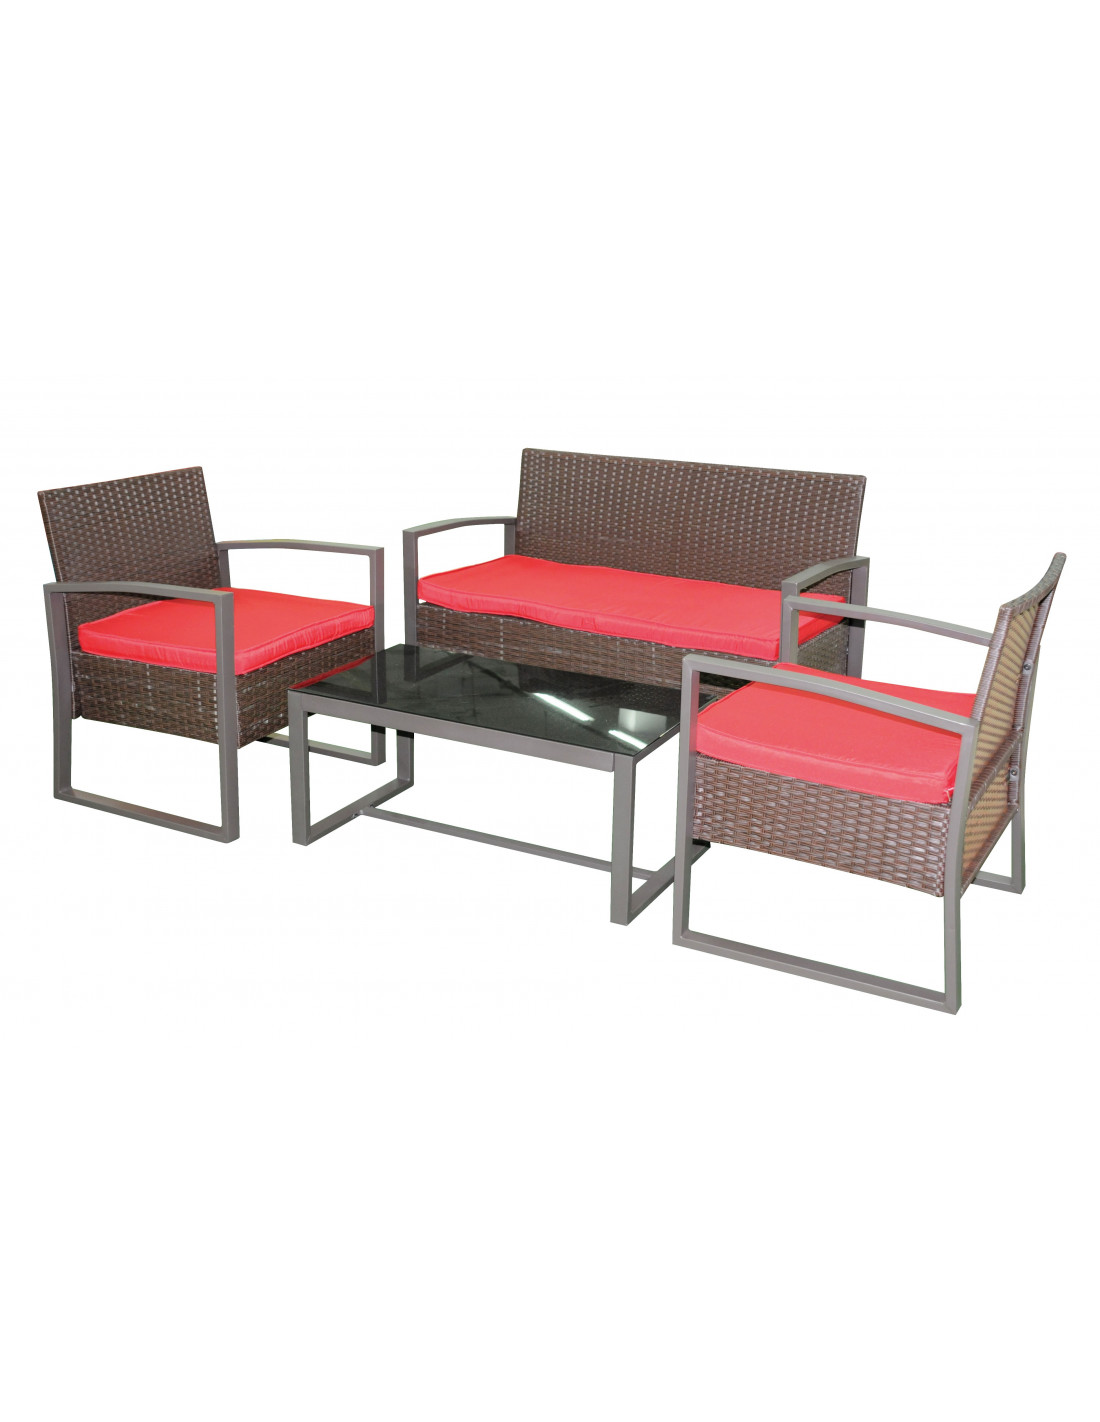 Ensemble salon lounger rouge hyper brico - Mobilier jardin rouge besancon ...